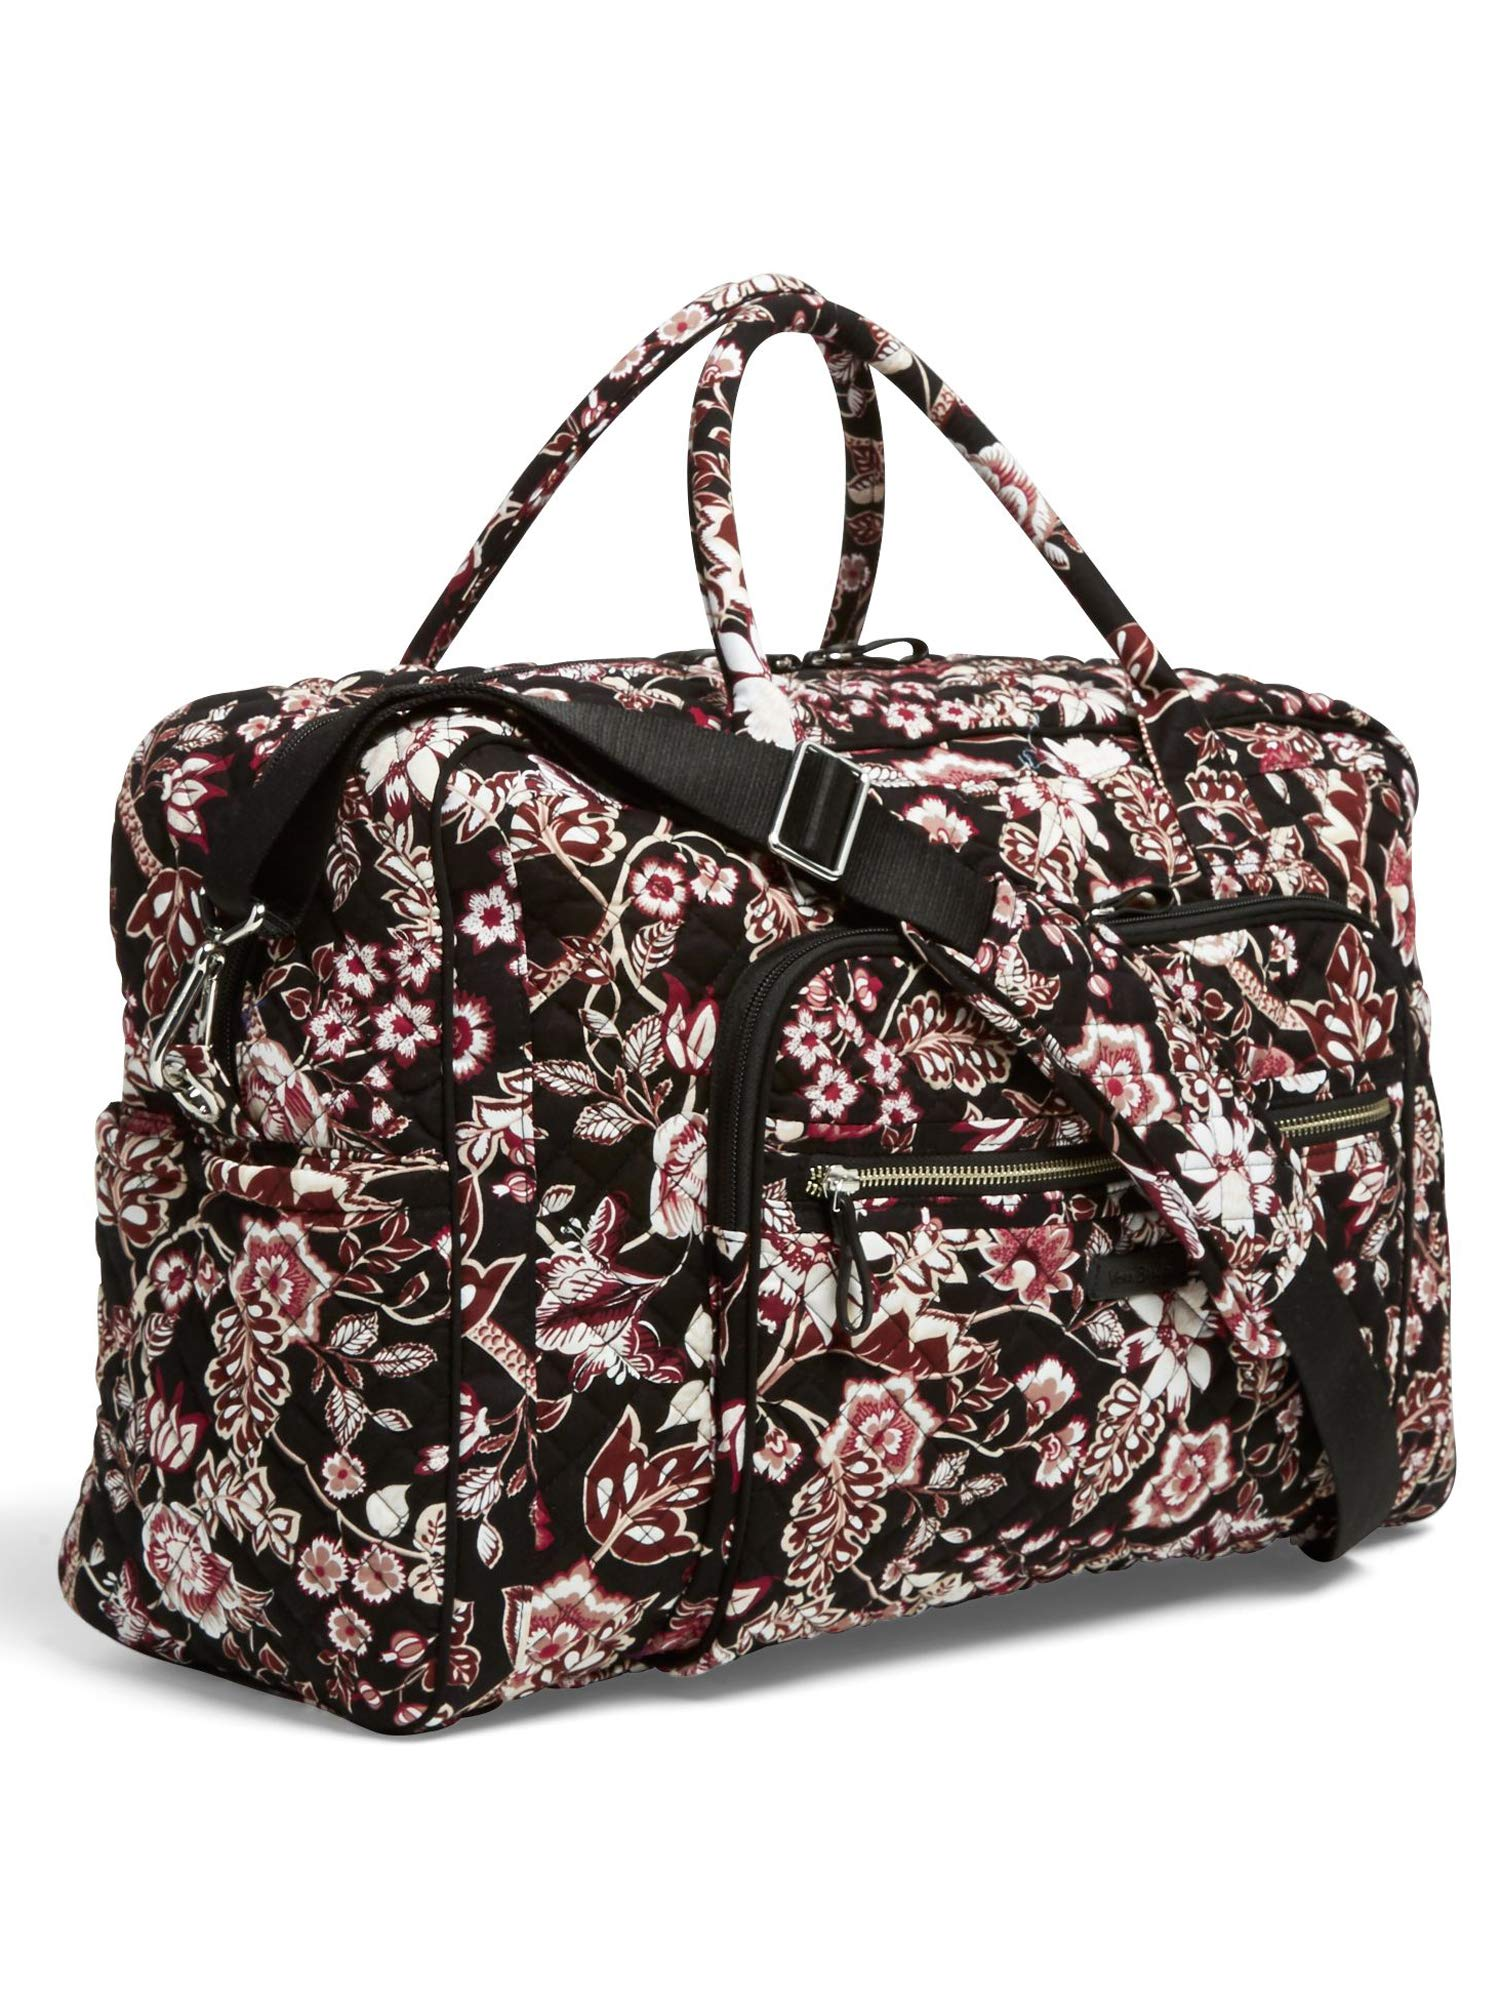 Vera Bradley Iconic Weekender Travel Bag, Signature Cotton, Desert Floral (Black/Vines Floral Neutral) by Vera Bradley (Image #1)